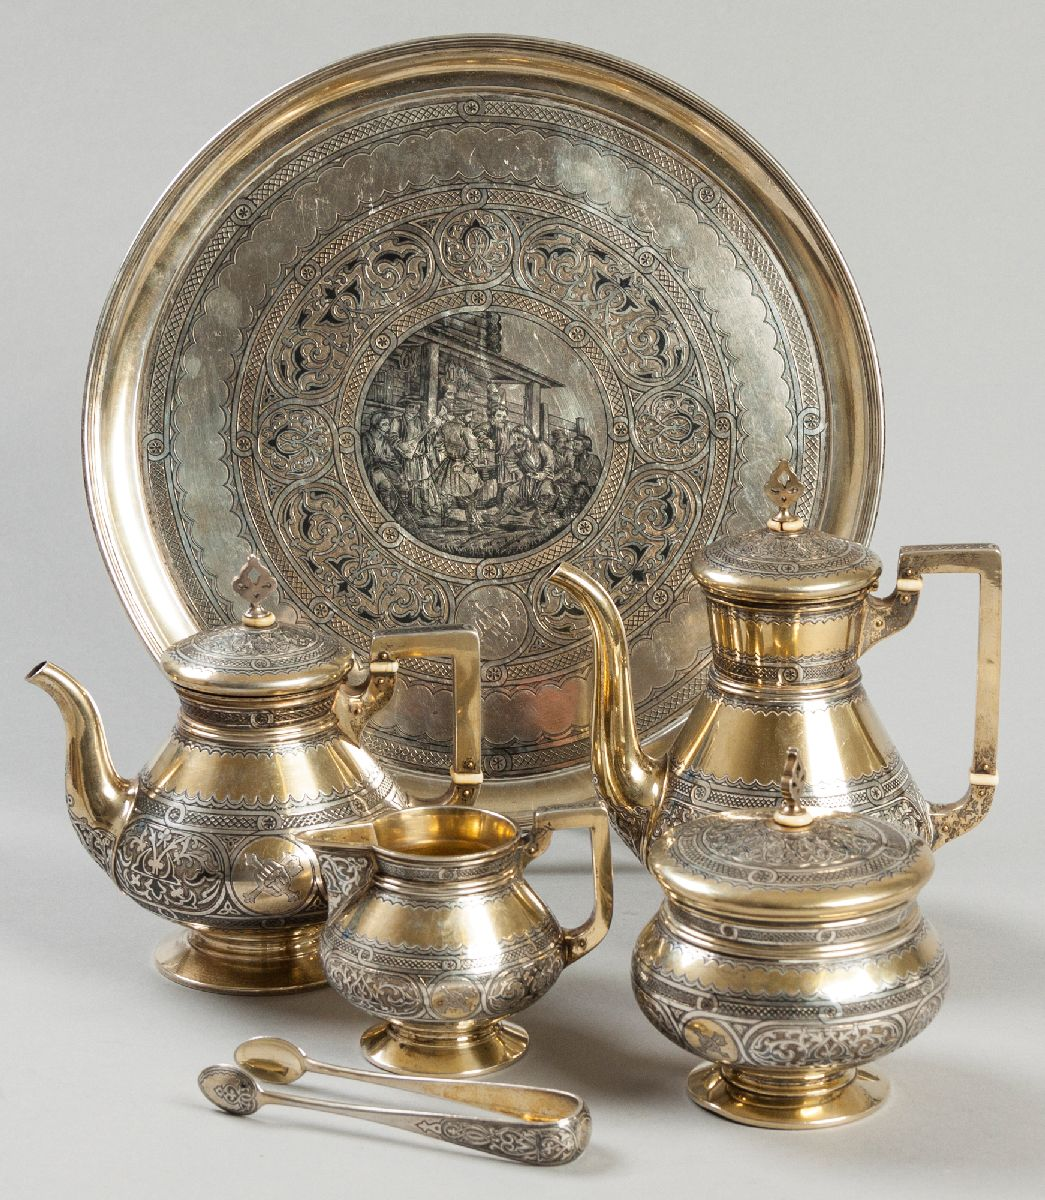 Lot 31 - A 19TH CENTURY FOUR PIECE RUSSIAN SILVER AND GILT TEA AND COFFEE SERVICE, STAMPED .84, 1870, A.C.,